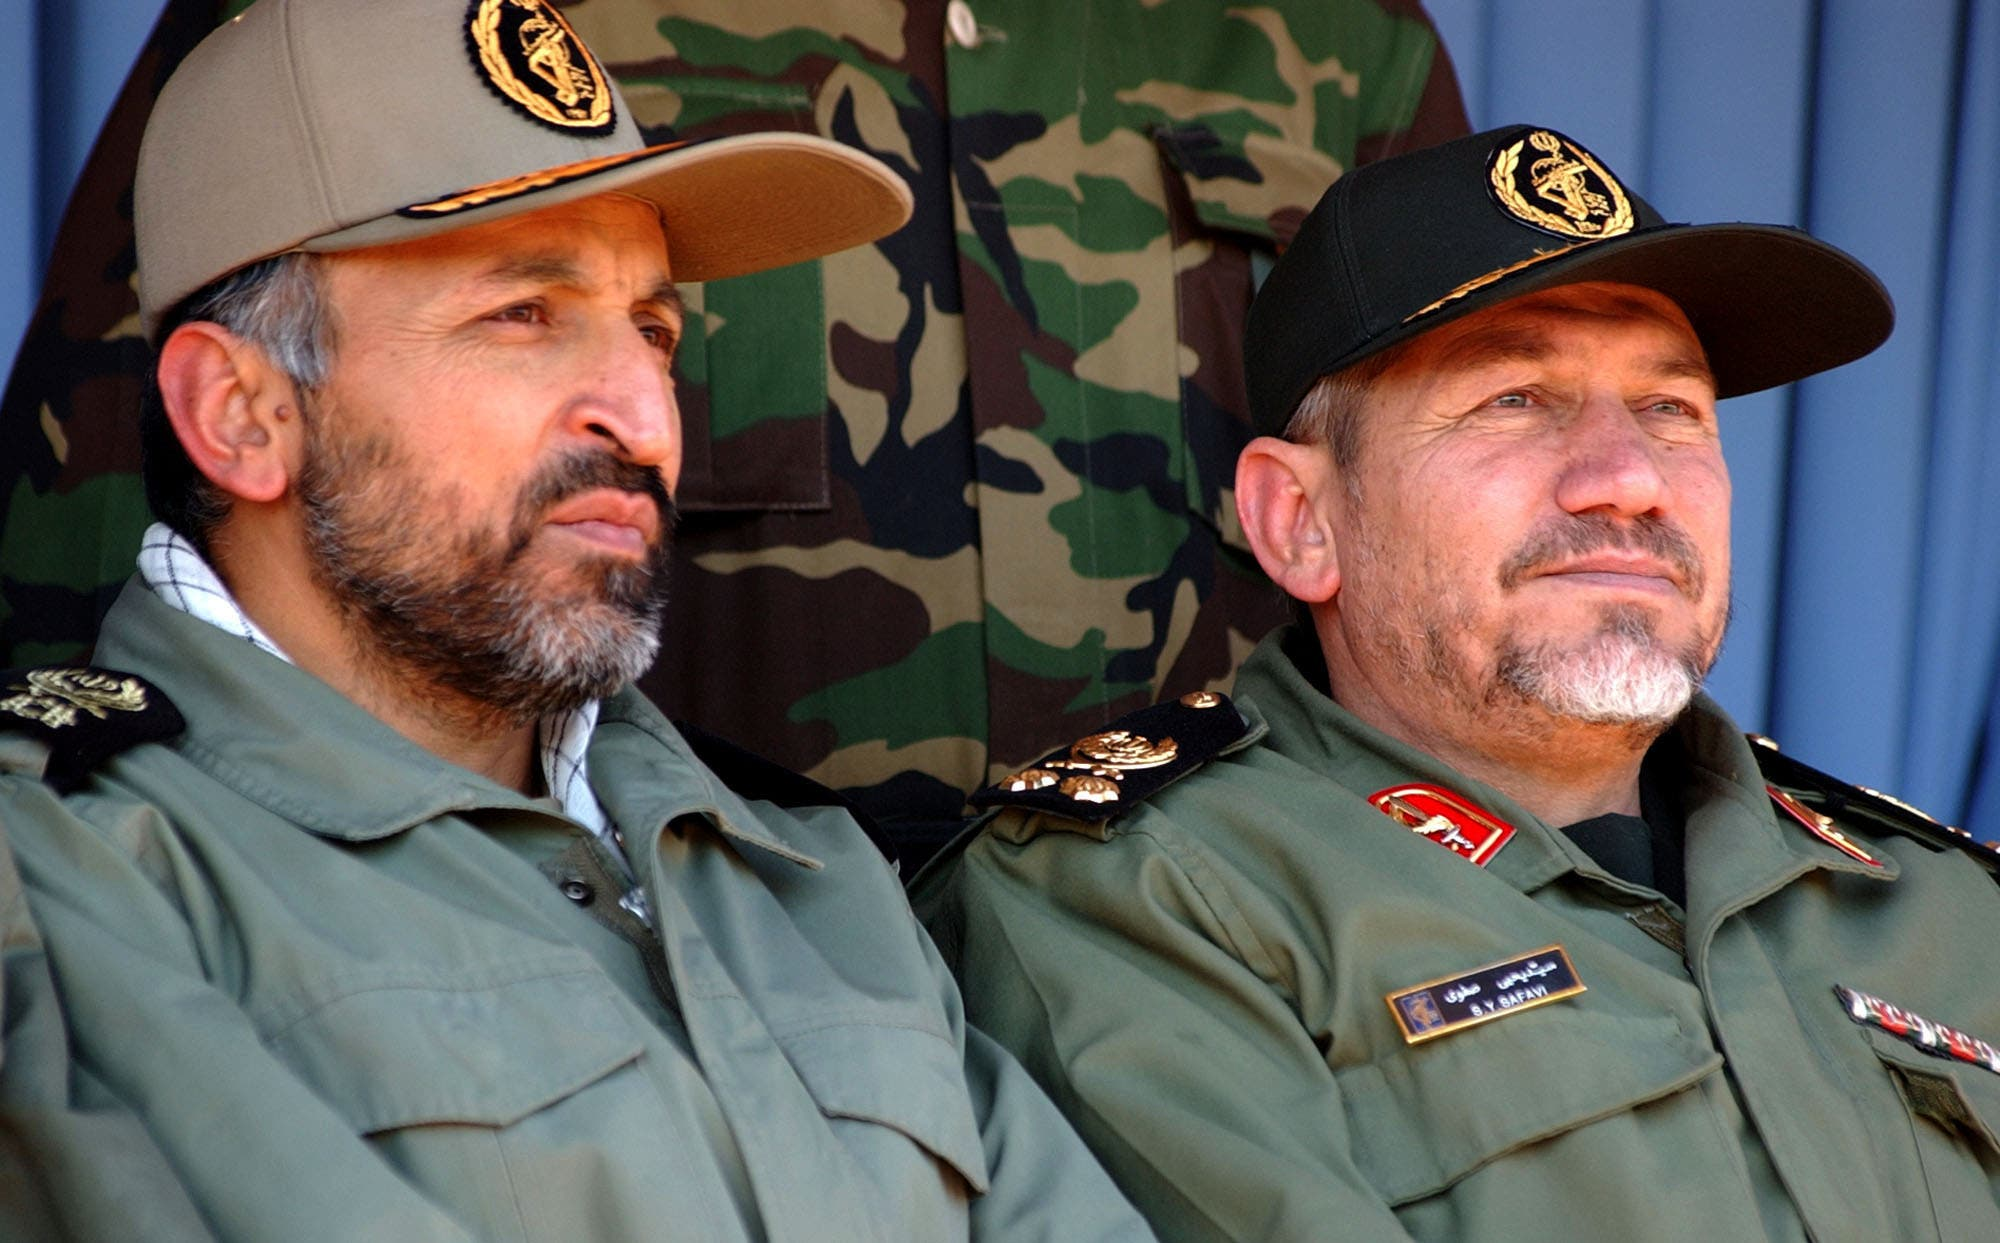 Gen. Rahim Safavi, right, and Gen. Mohammad Hejazi, attend a rally by 100,000 paramilitary forces in the southern suburbs of Tehran on Wednesday Nov. 24, 2004. (AP)